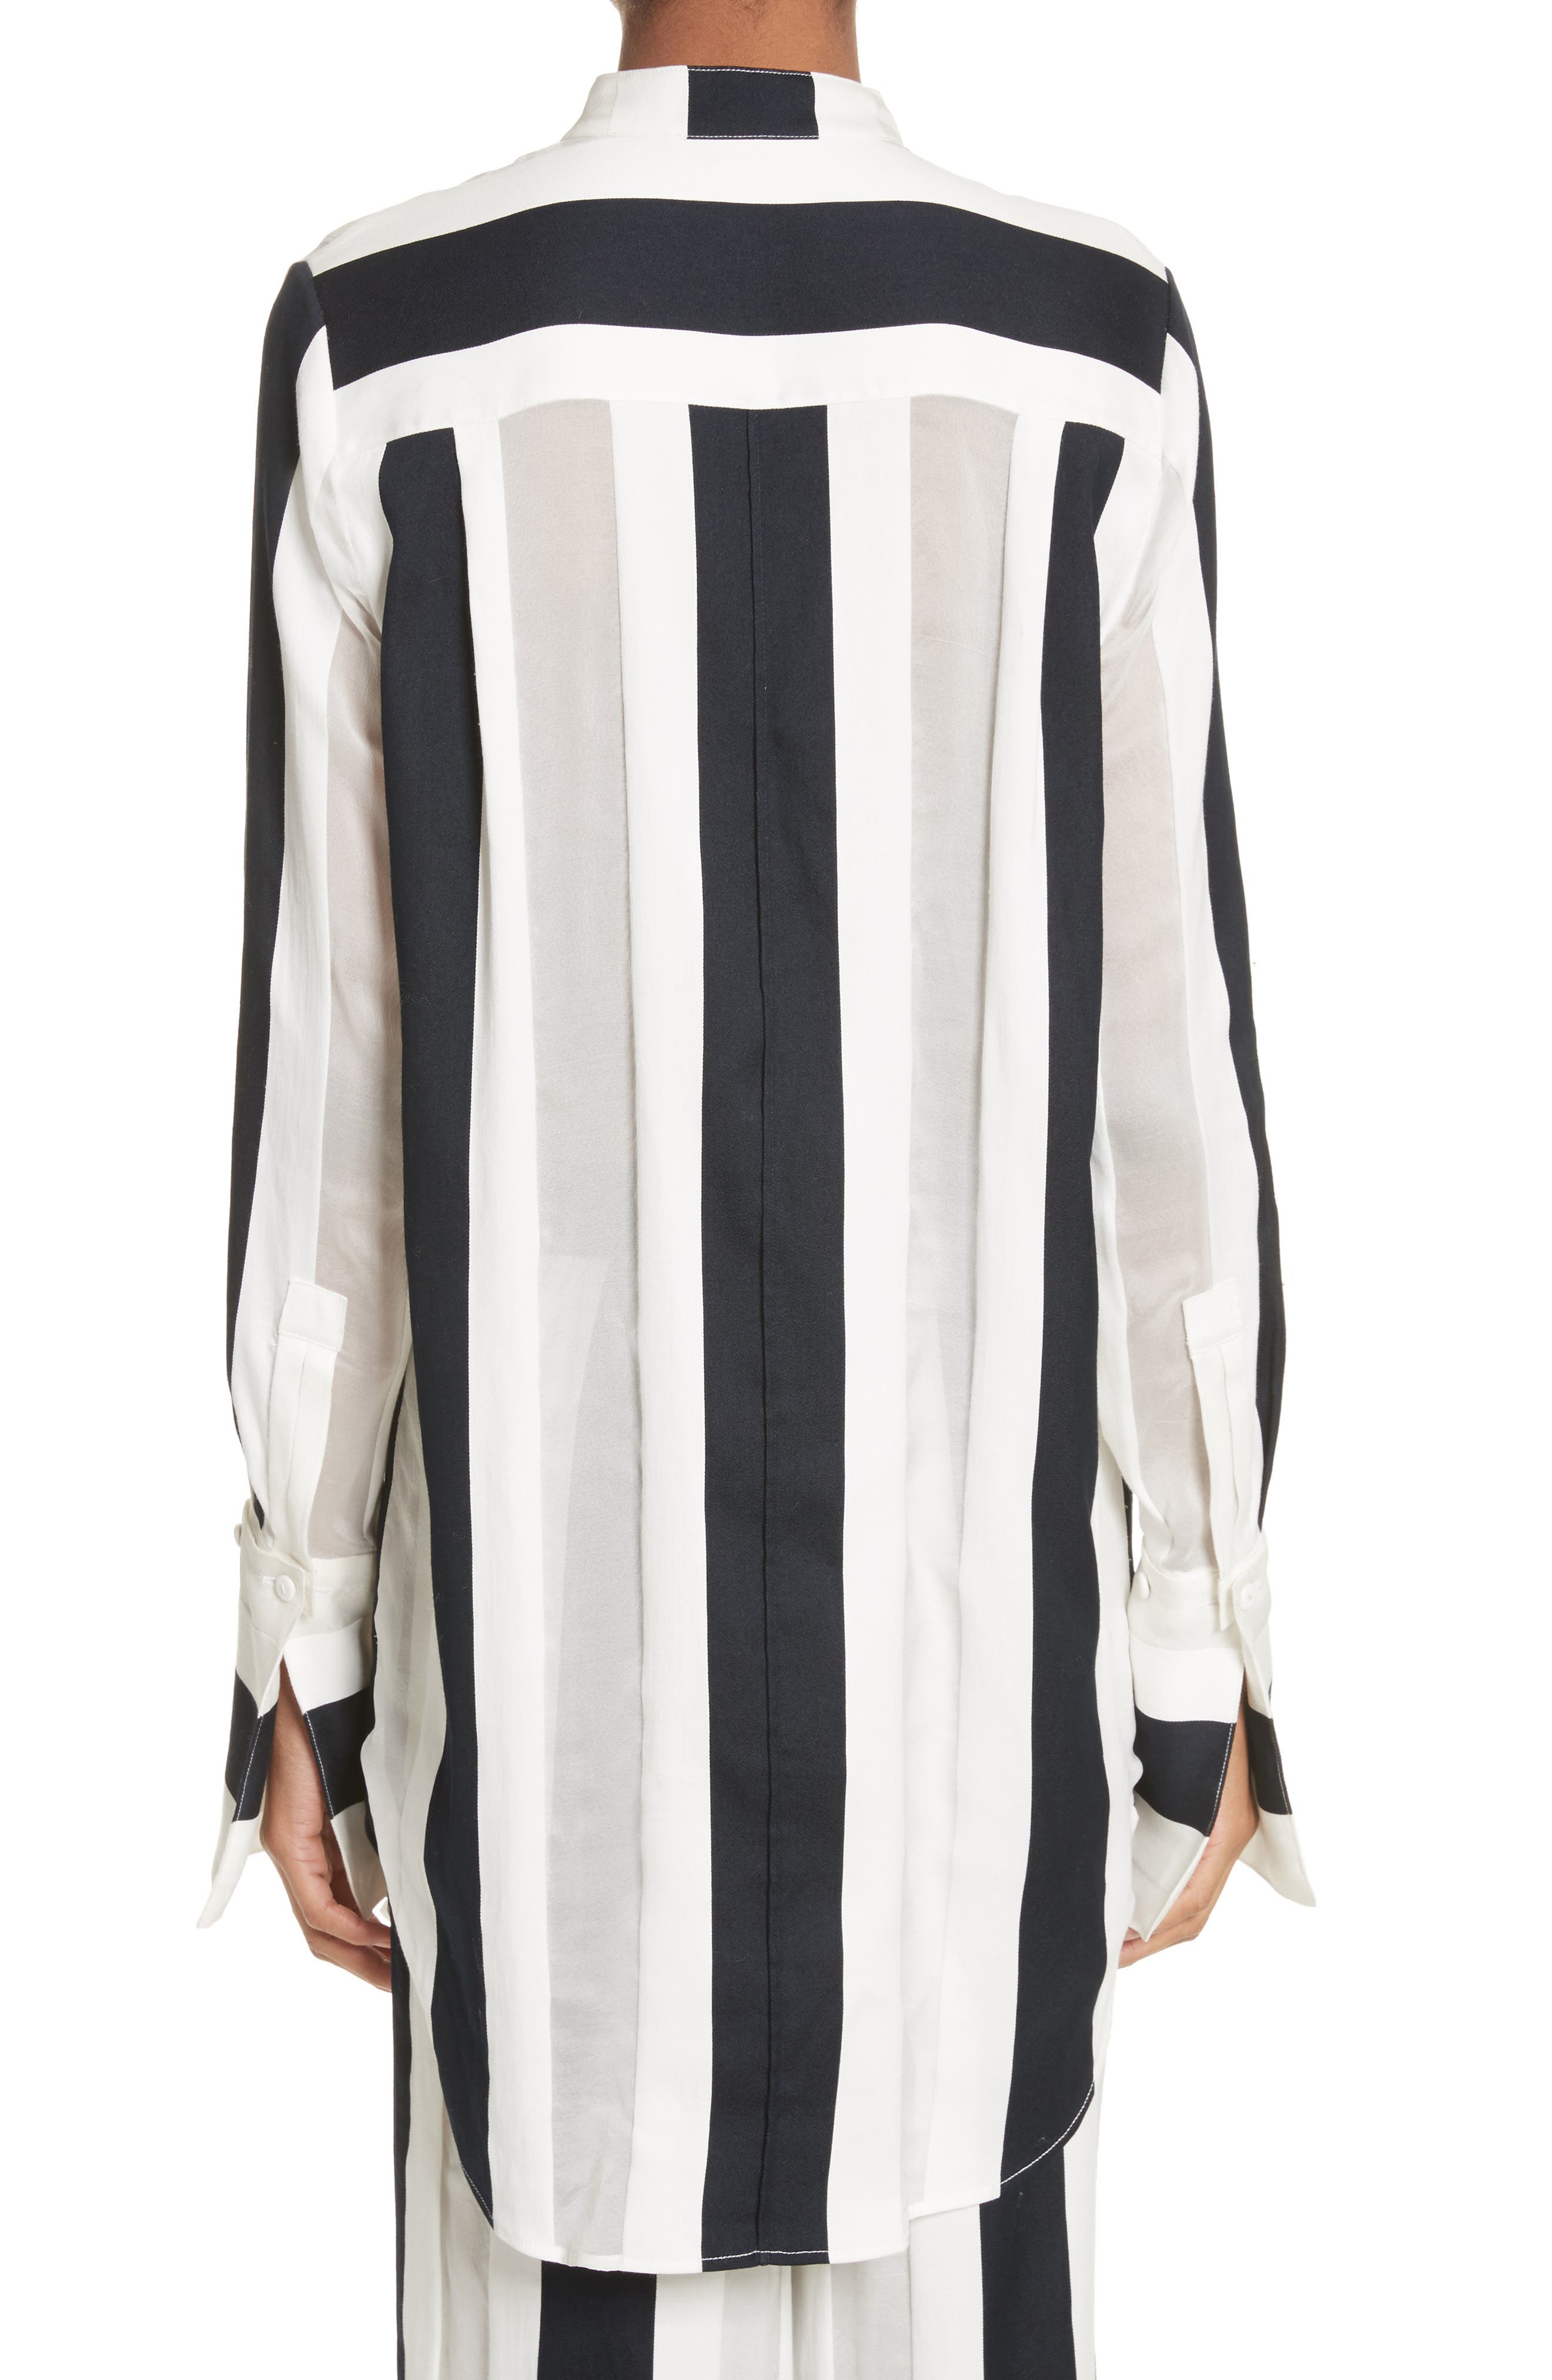 Cotton & Silk Stripe Jacquard Blouse,                             Alternate thumbnail 2, color,                             175